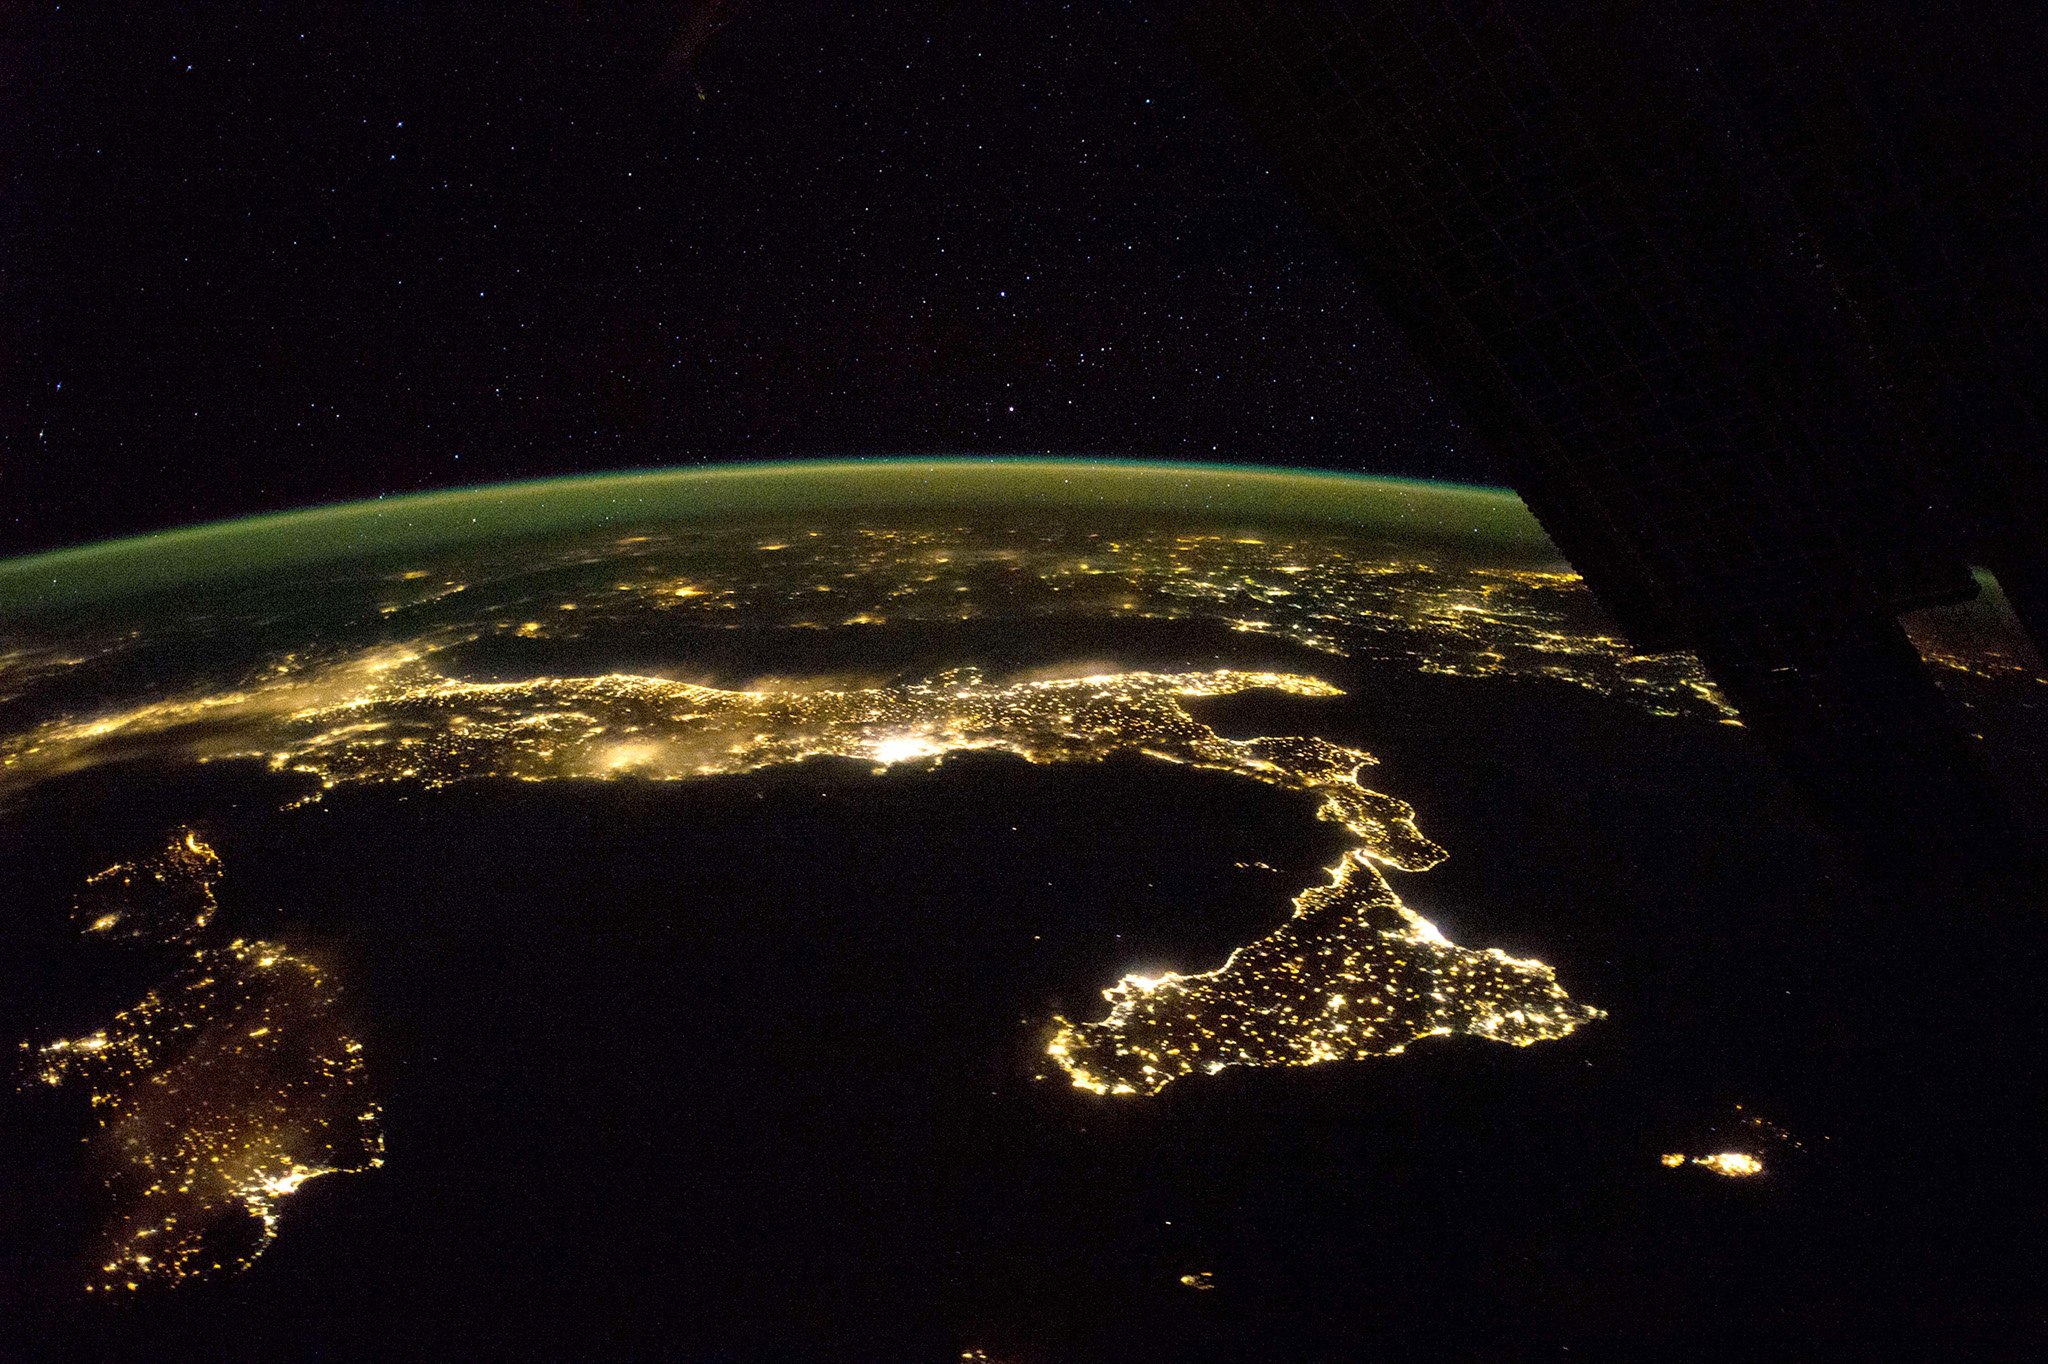 "This image released by NASA December 15,...This image released by NASA December 15, 2014 shows the easily recognized boot of Italy, with Sicily at its toe, spread across this panorama taken October 21 by astronauts aboard the International Space Station(ISS). On a clear night looking east, the pattern of night lights shows populations concentrated mainly along the coastlines, but also in the Po River Valley of northern Italy(L). Some of the brightest clusters of lights are Rome and nearby Naples, with island cities of Cagliari on Sardinia and Catania on Sicilynow well-known as the hometown of European Space Agency astronaut Luca Parmitano. The small, dark, circular patch dangerously close to Catania marks the unpopulated slopes of the active volcano Etna. Hazy lights, as over the Po valley and Rome, probably indicate thin clouds above. The island of Malta appears at the lower right. The airglow line is vivid in this night shot. AFP PHOTO / HANDOUT / NASA   == RESTRICTED TO EDITORIAL USE / MANDATORY CREDIT: ""AFP PHOTO / HANDOUT / NASA  ""/ NO MARKETING / NO ADVERTISING CAMPAIGNS / NO A LA CARTE SALES / DISTRIBUTED AS A SERVICE TO CLIENTS ==Handout/AFP/Getty Images"